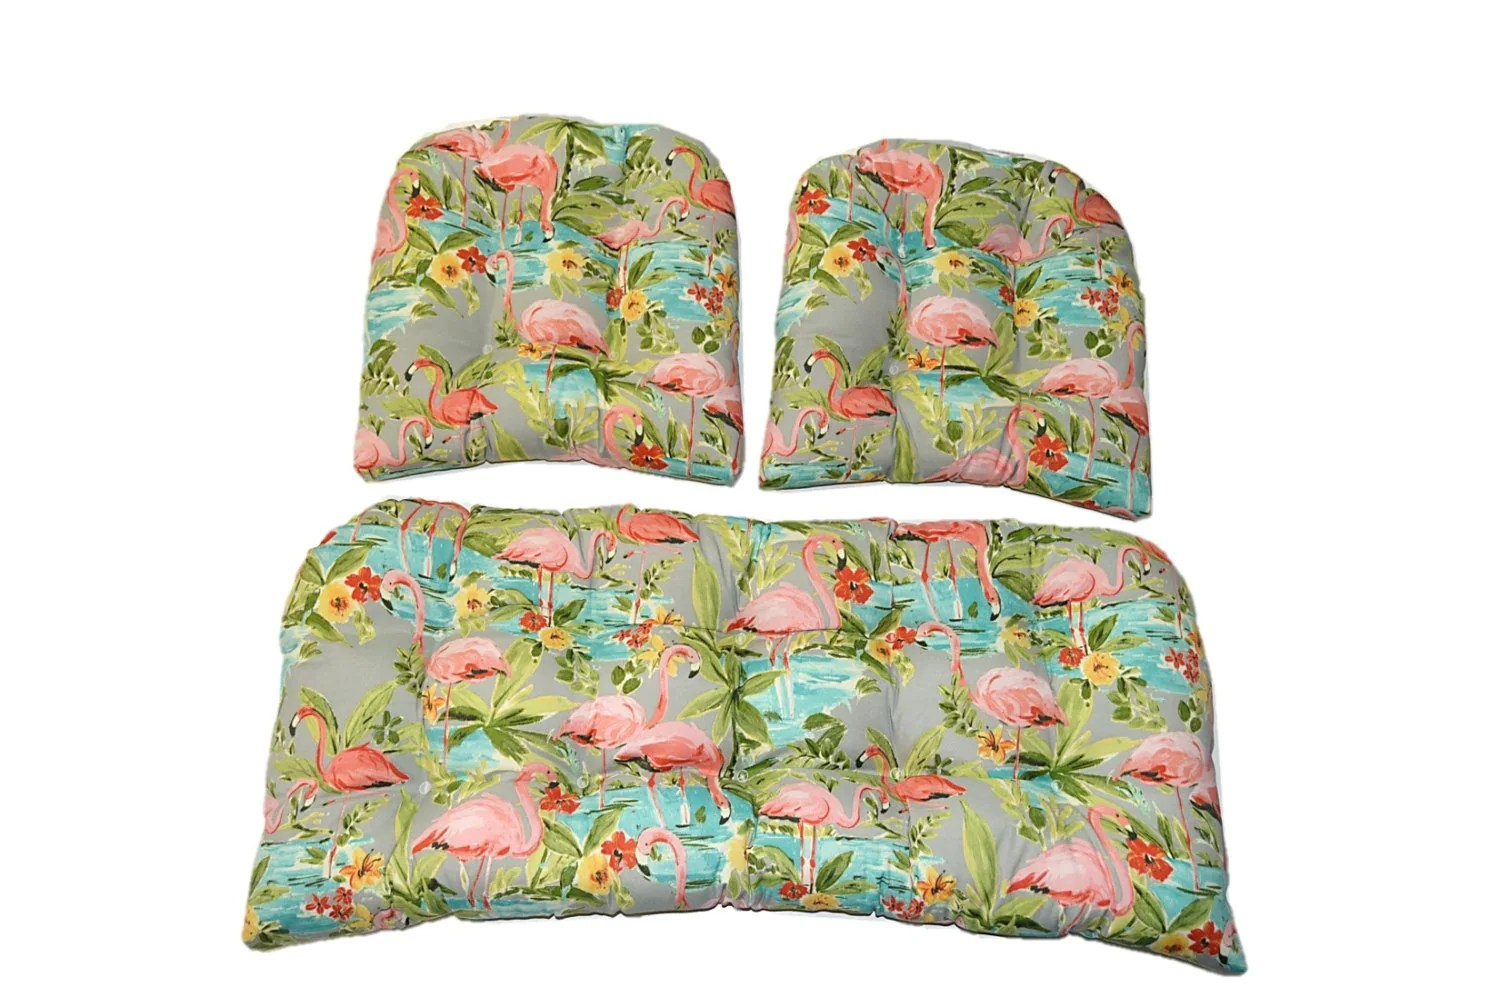 In / Outdoor Wicker Loveseat Settee Cushion & 2 Matching Chair